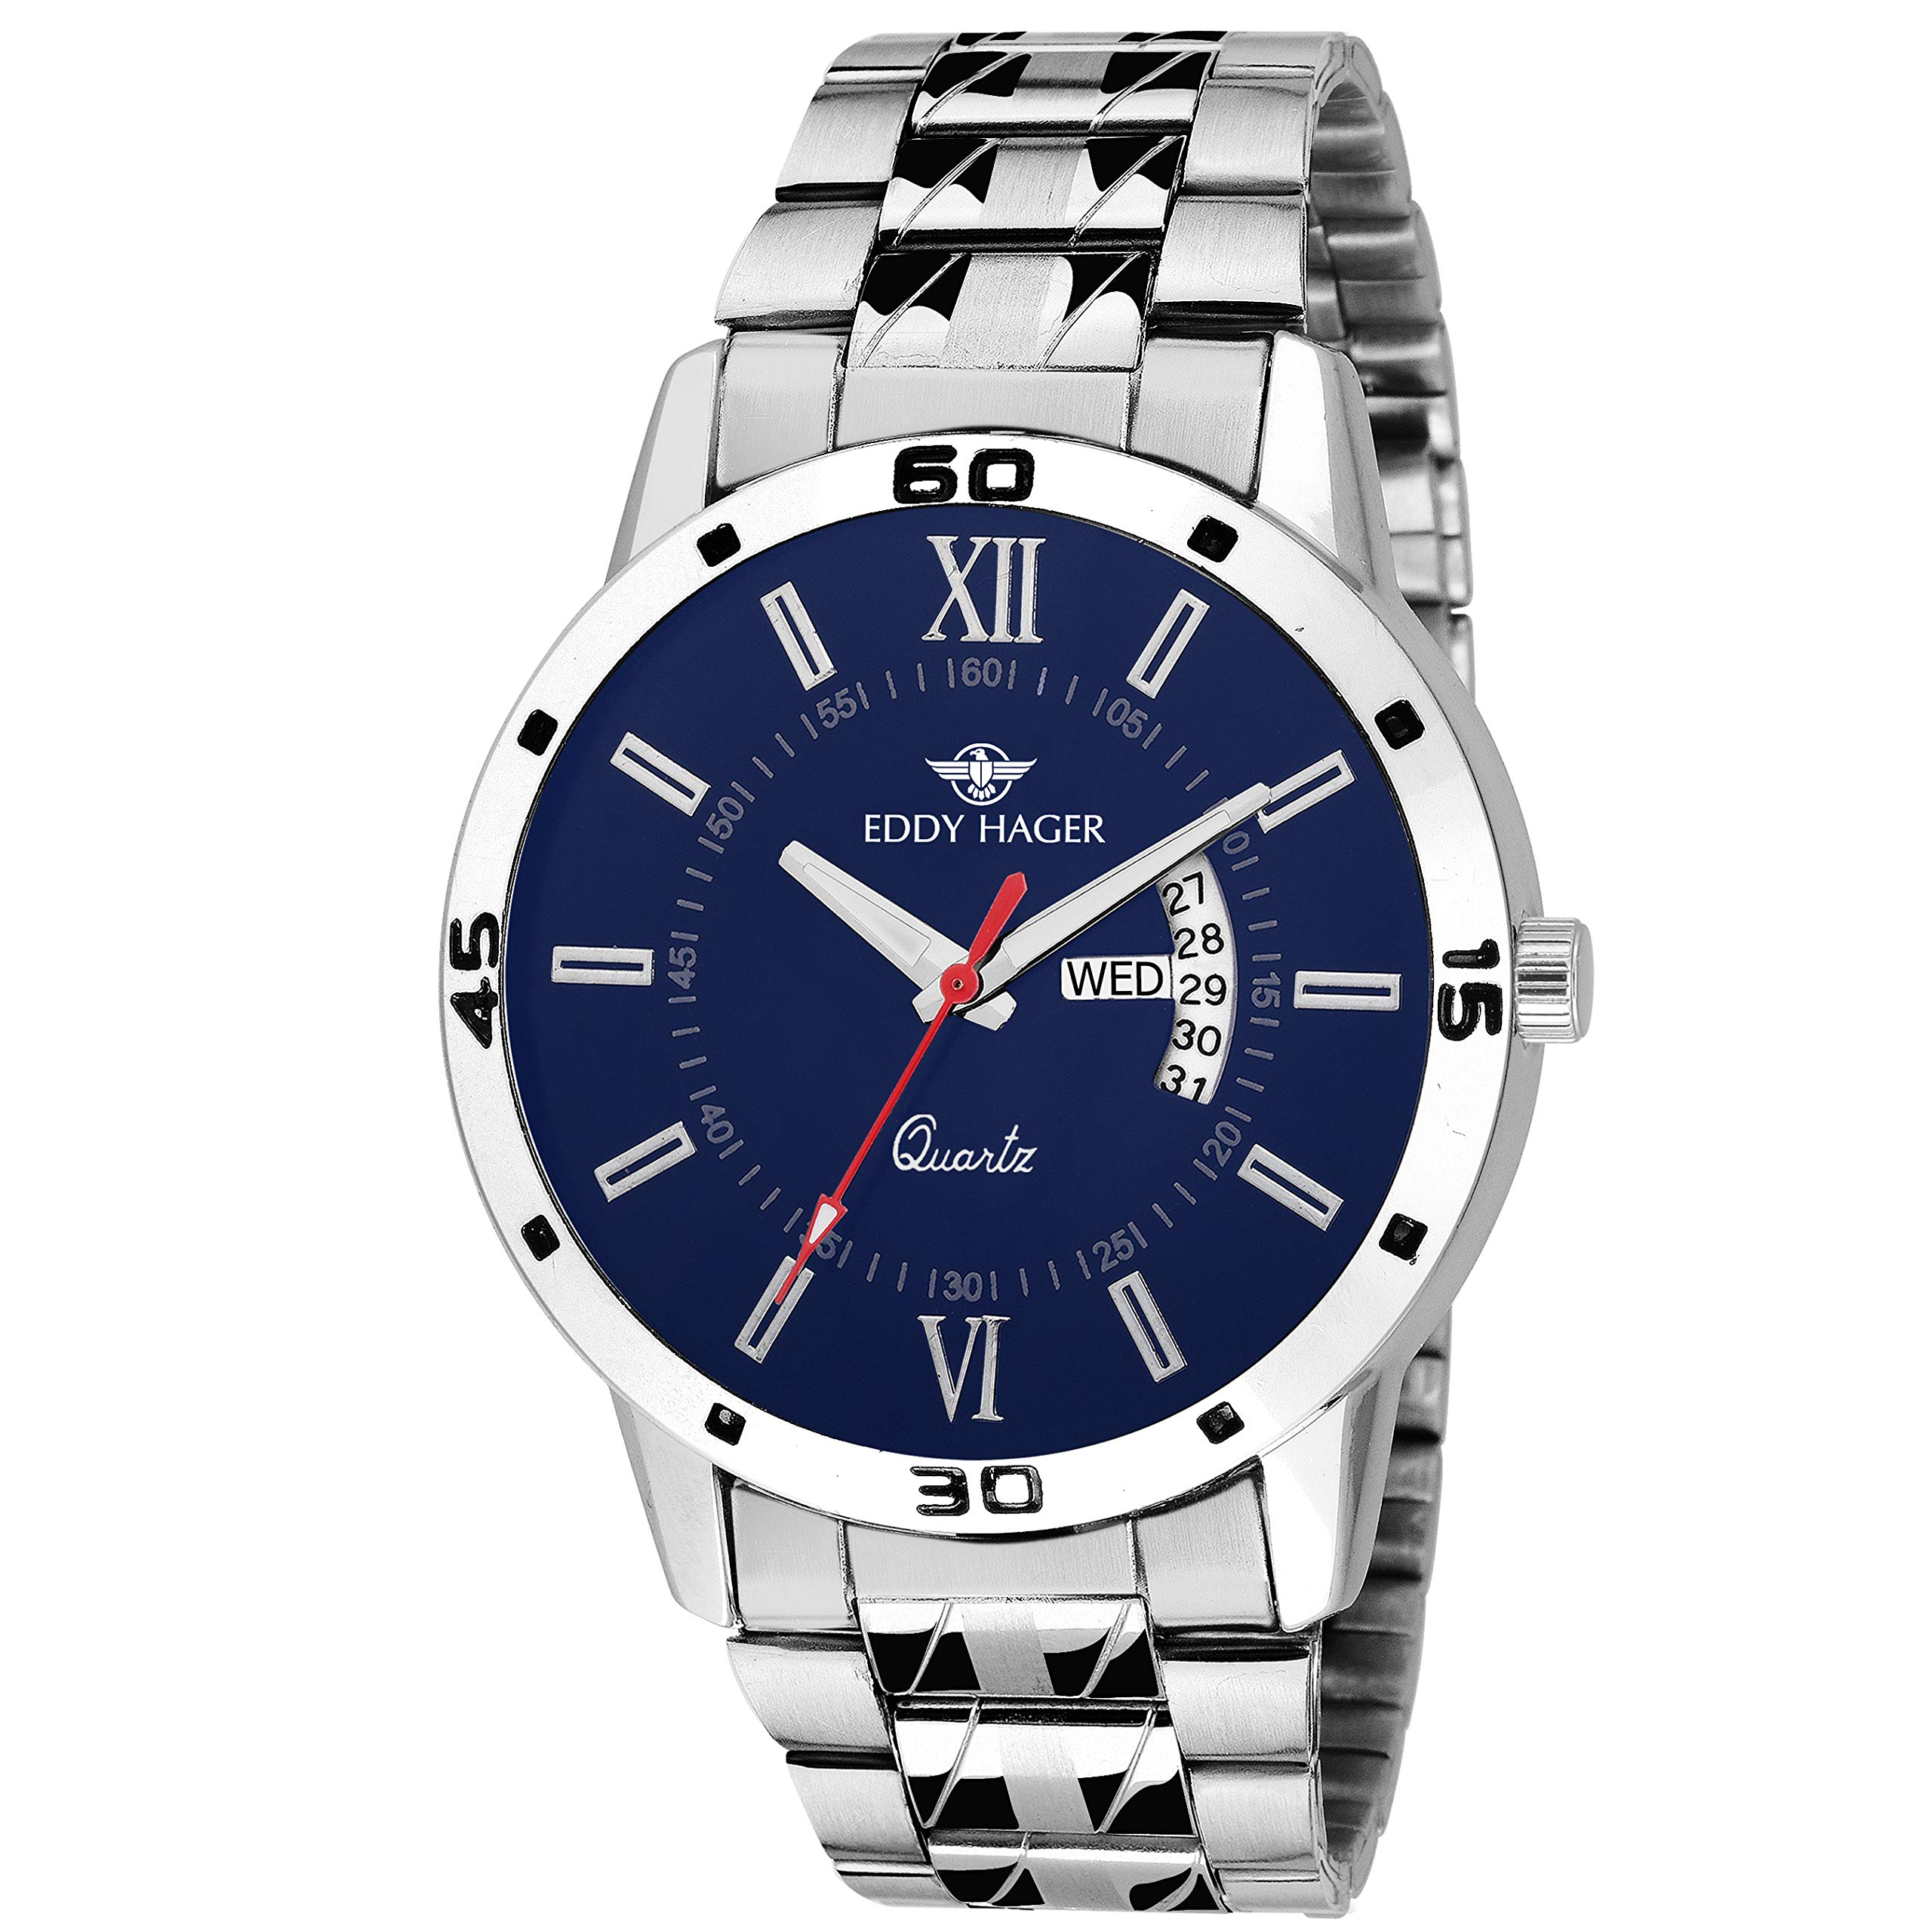 Eddy Hager Day and Date Men's Watch product image